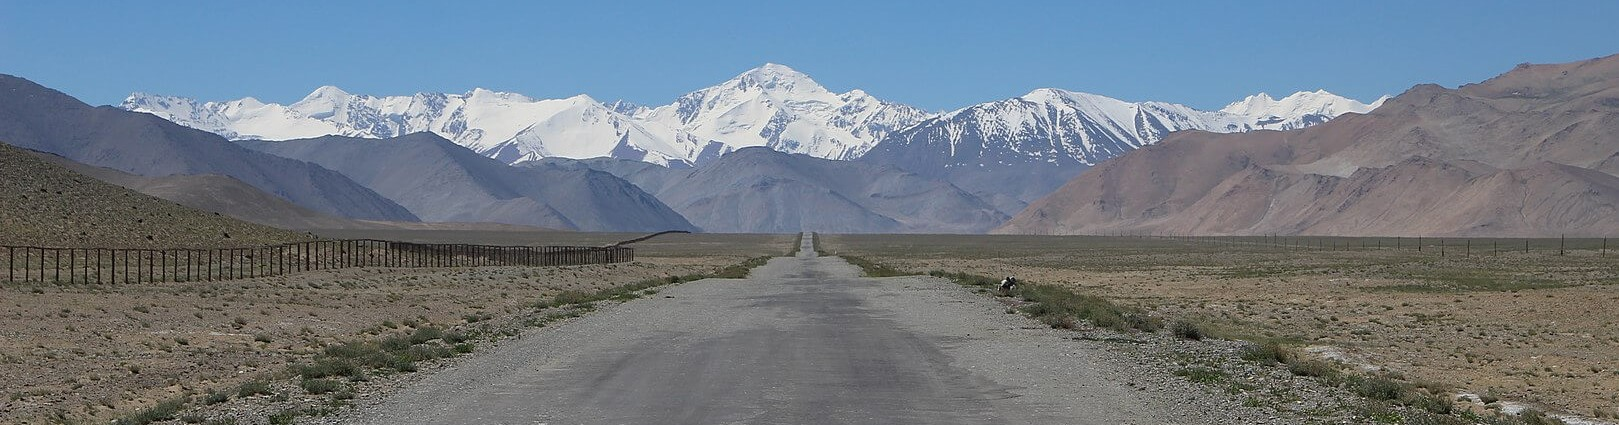 pamir_route